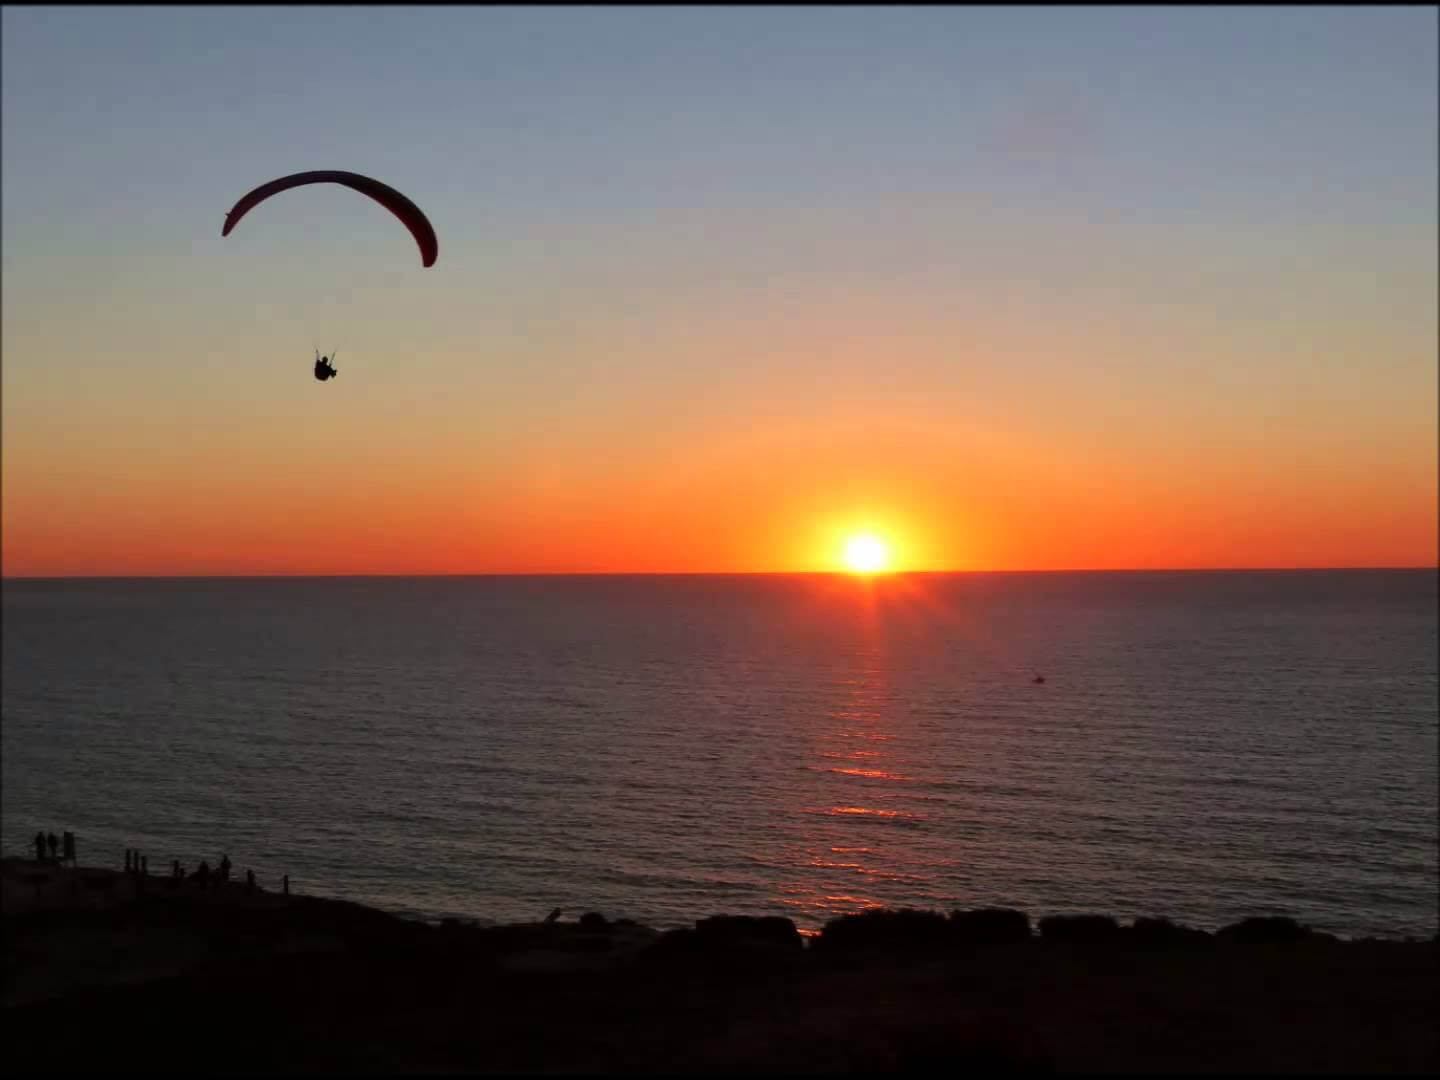 Torrey Pines Gliderport Things to do in San Diego